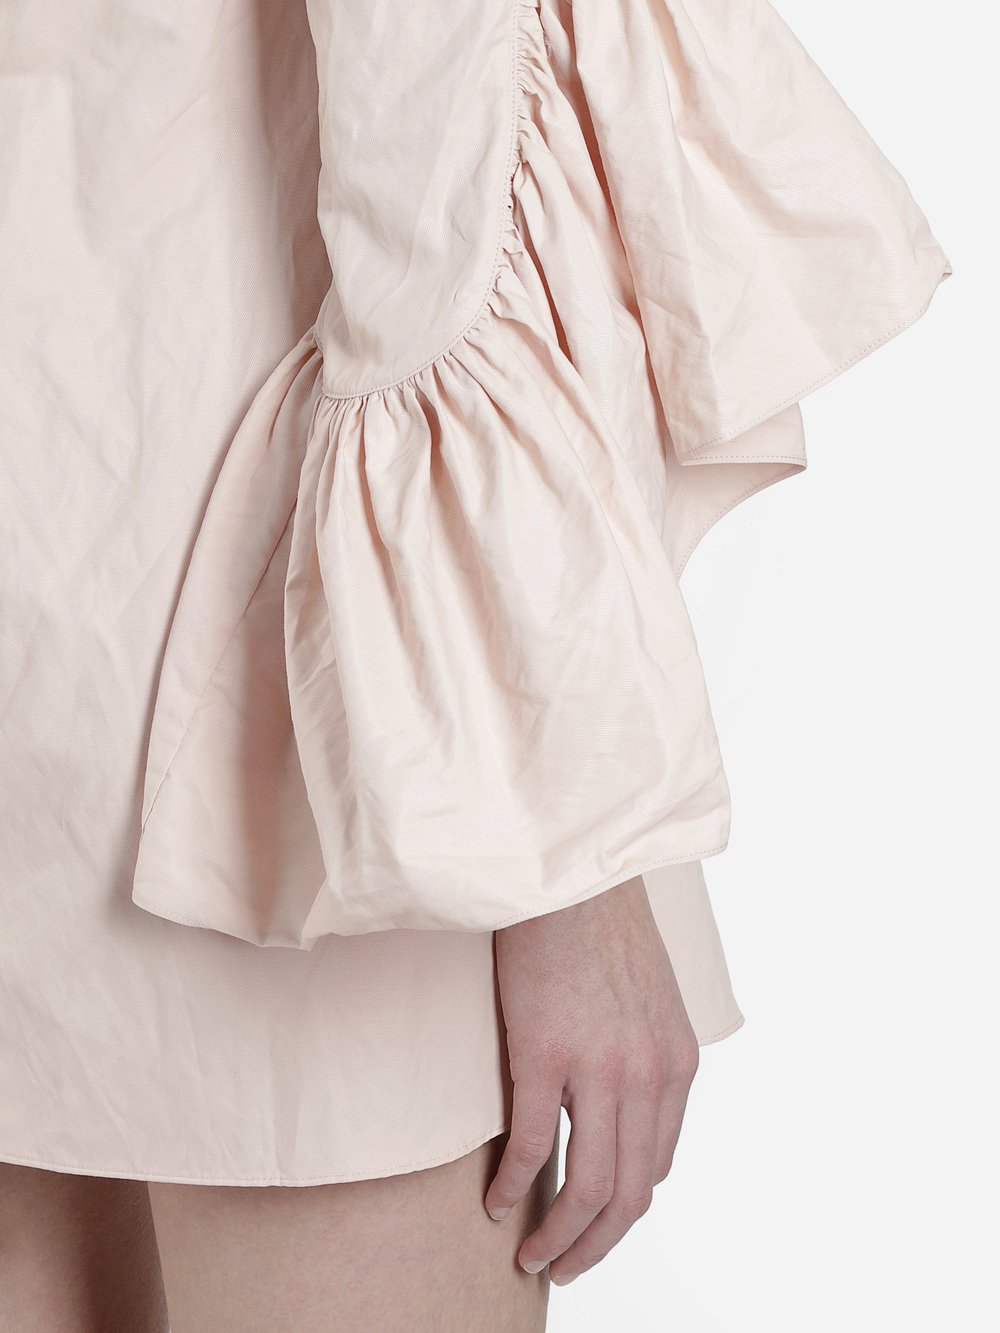 Ss18dr0042tft pale pink 18 01 17 5524